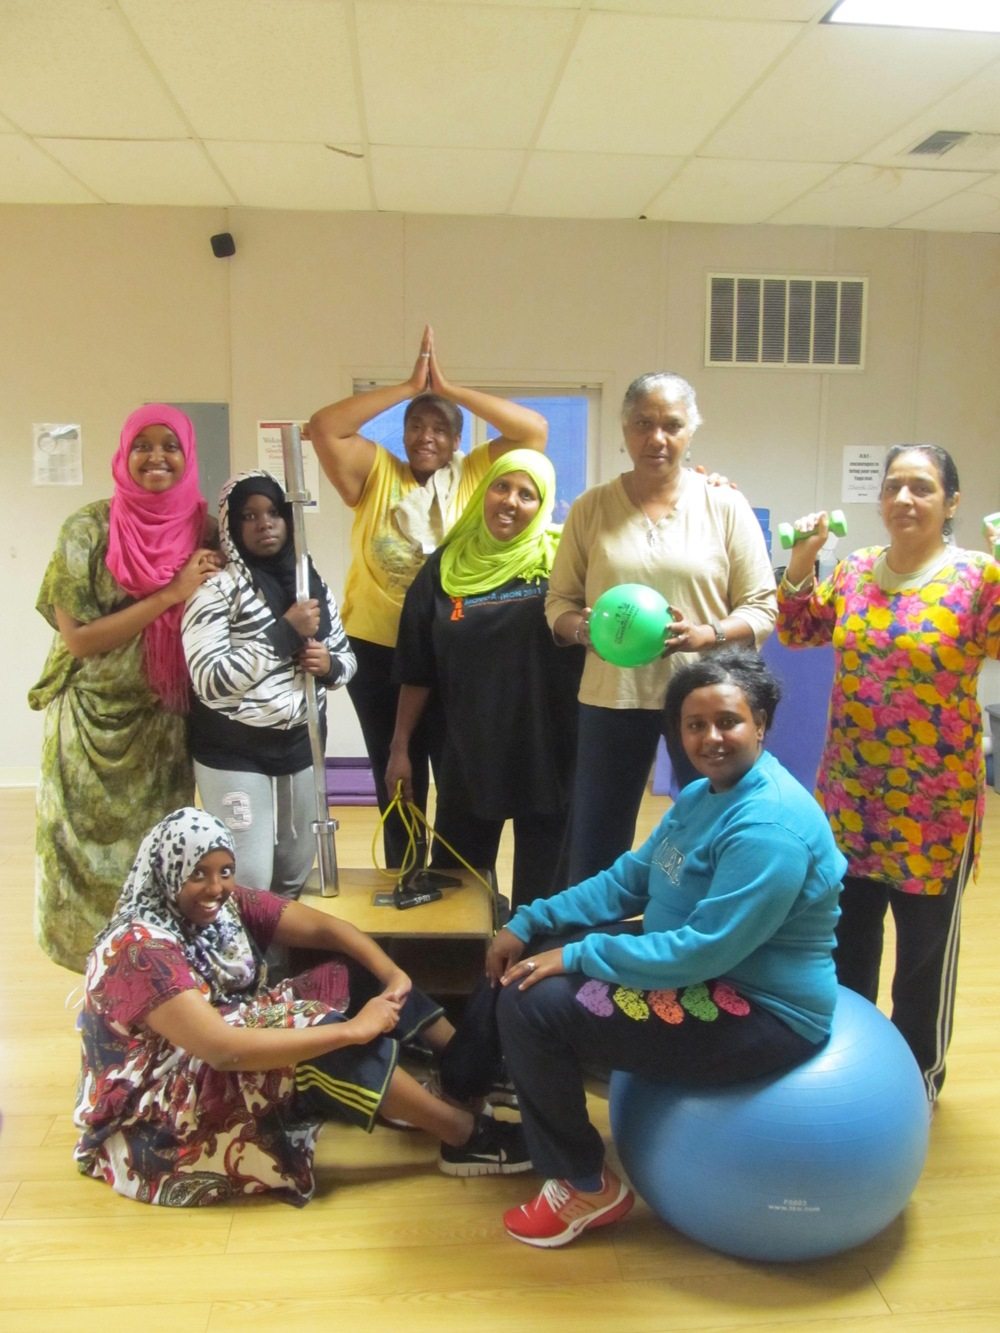 """Safe environment for all ladies, fitness levels, ages, ethnicity etc. to  come and get in shape and have fun,"" Member, age 25"